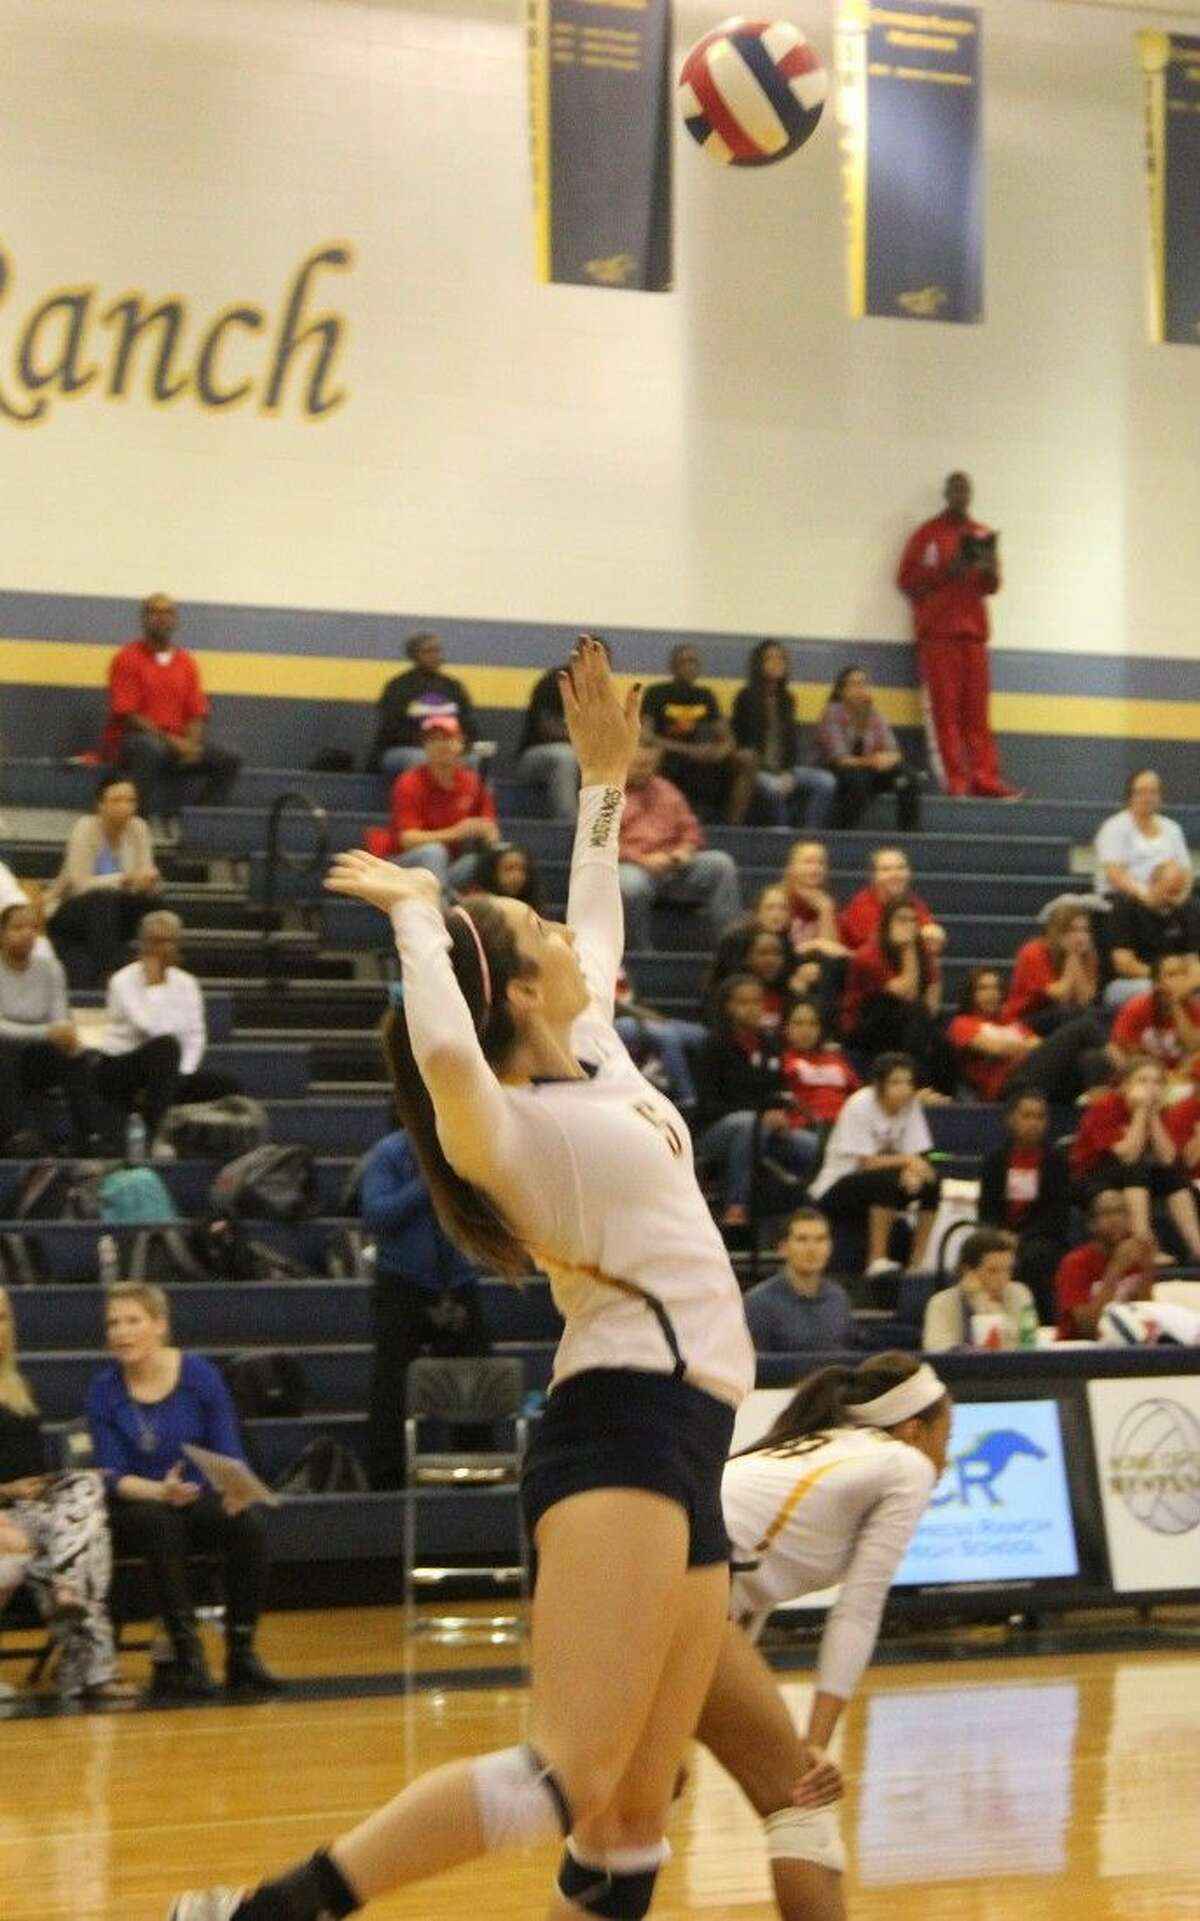 Shelly Fanning has committed to play for Baylor University in 2015.